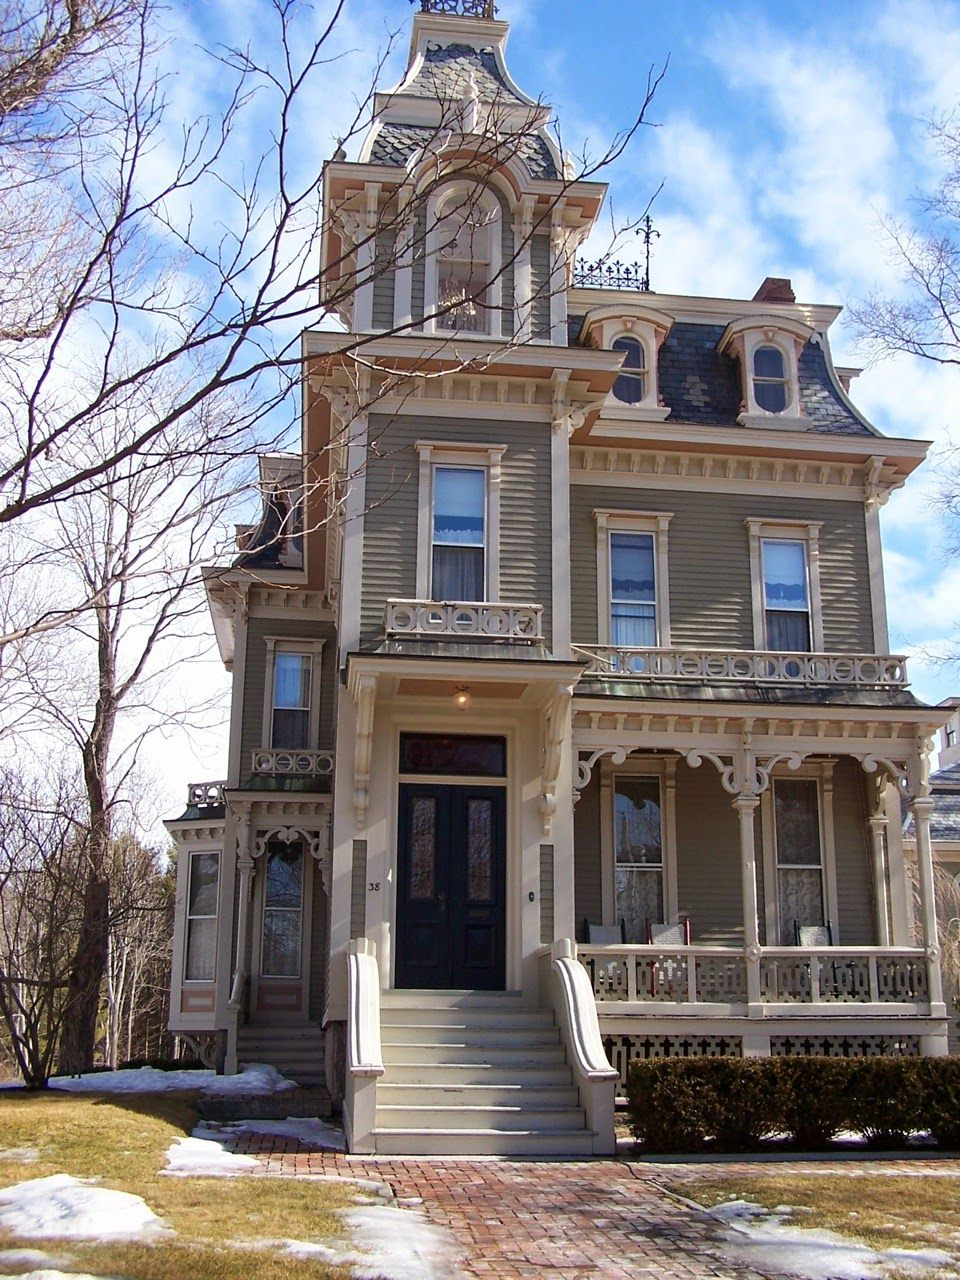 Here S Another Victorian Era Style Second Empire An American Interpretation Of French Imperial Architecture D House Styles Architecture Victorian Homes